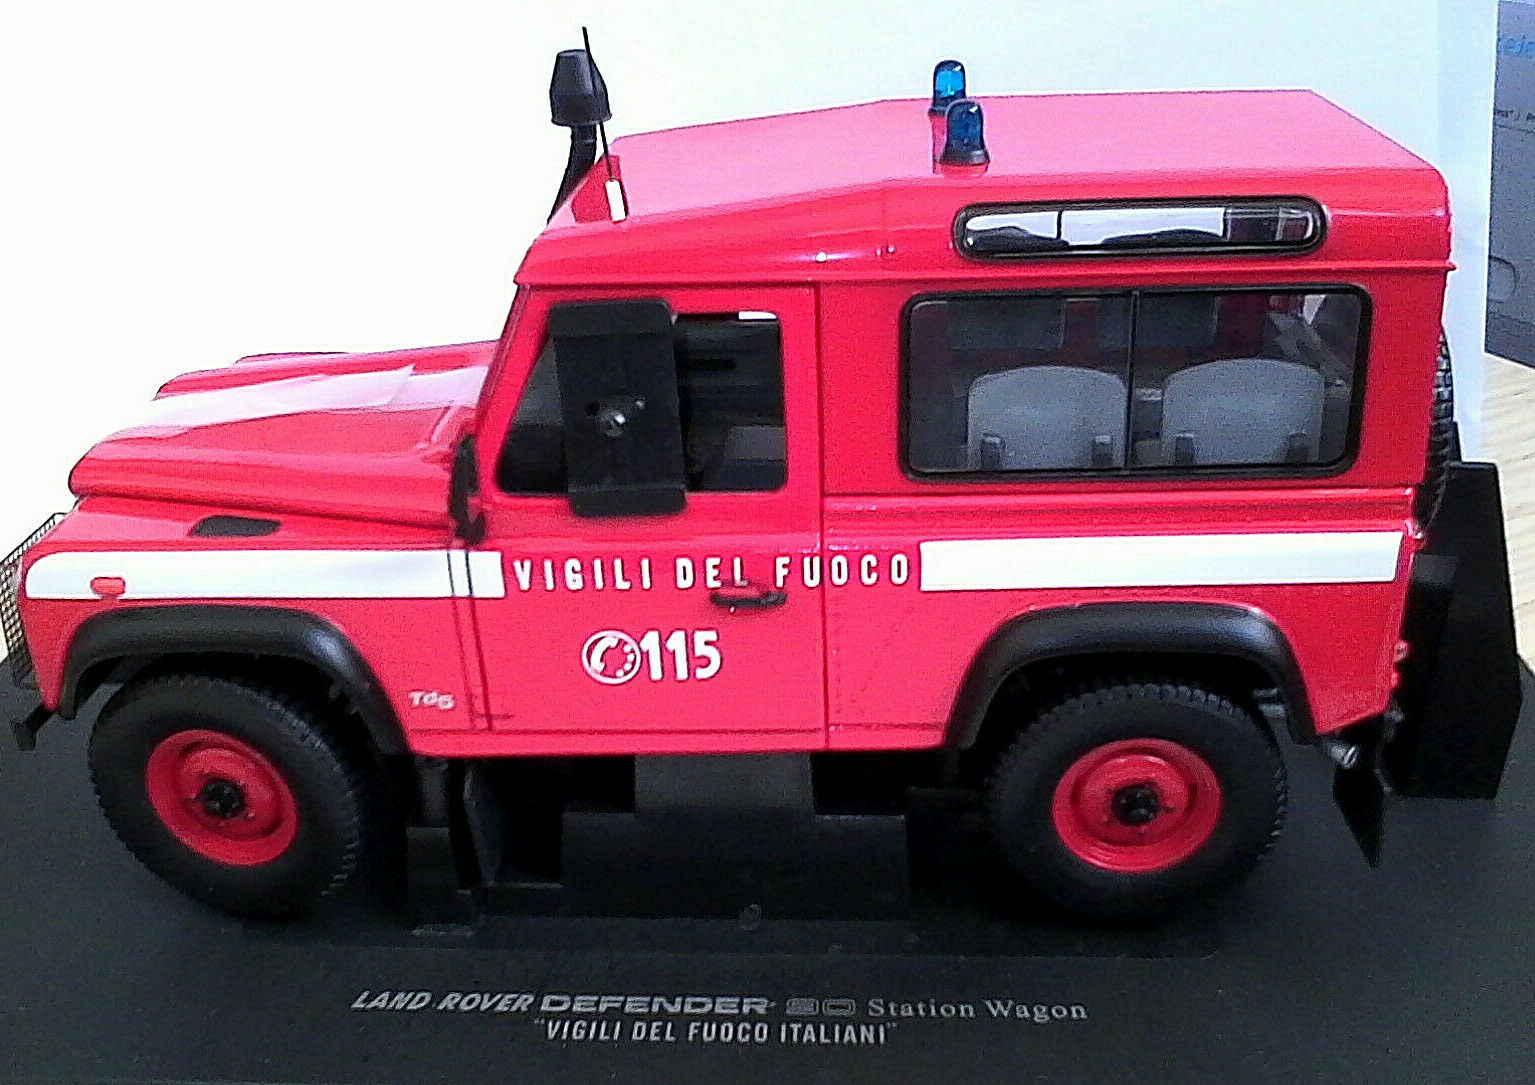 Universal Hobby Hobbies 1 18 cars land rover defender 90 Firefighters 3855